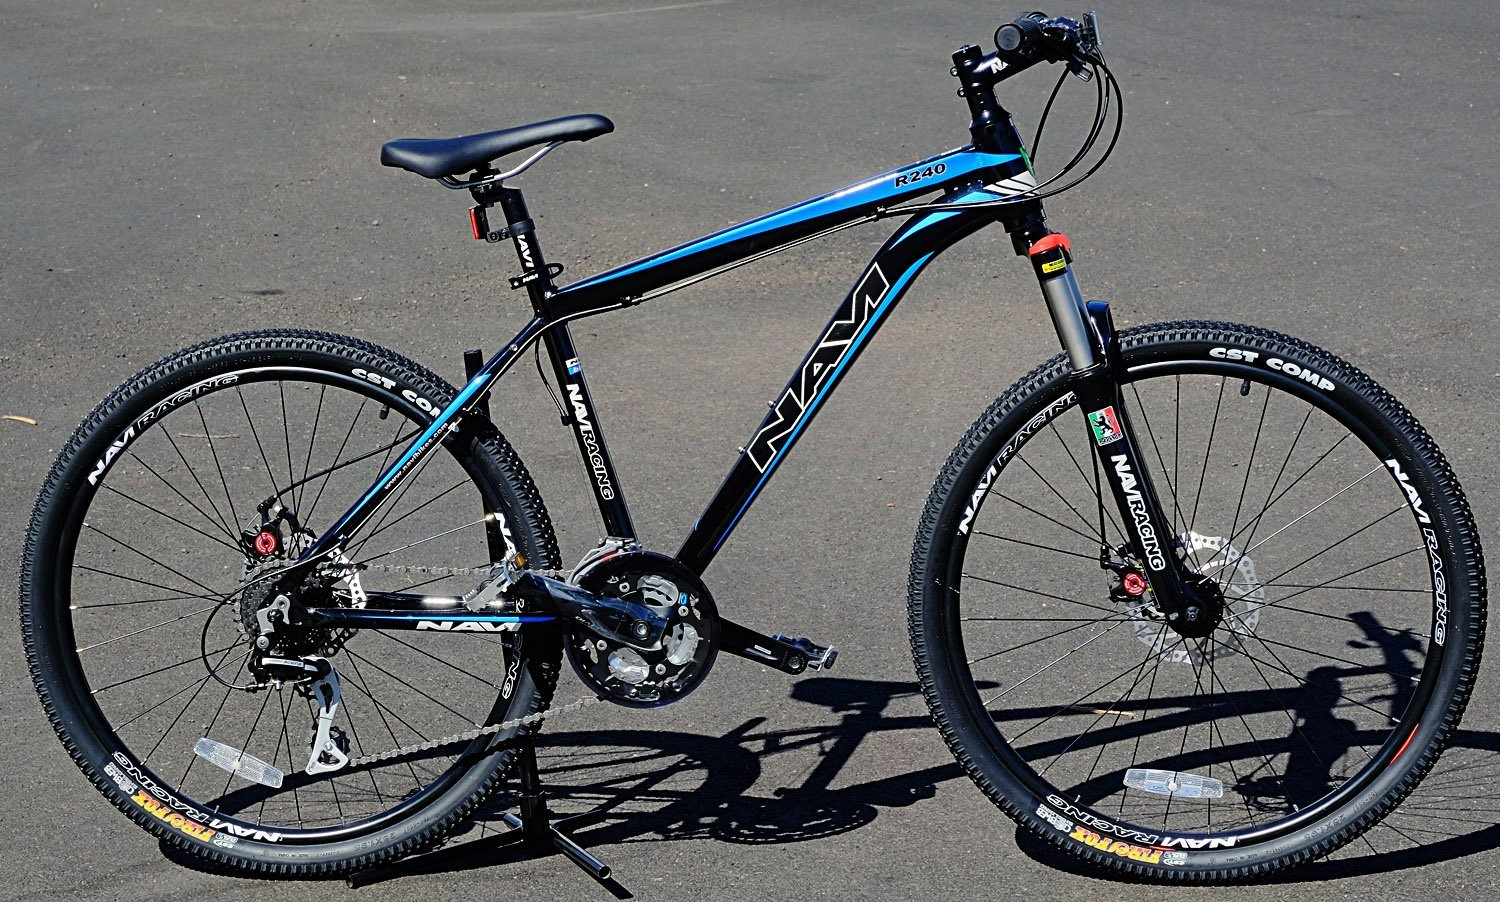 "Navi R240 Hardtail Aluminum Alloy Frame, ZOOM Disc Brakes, Shimano ACERA 24-speed, 26"" Wheel Mountain Bike (BLACK/ BLUE)"